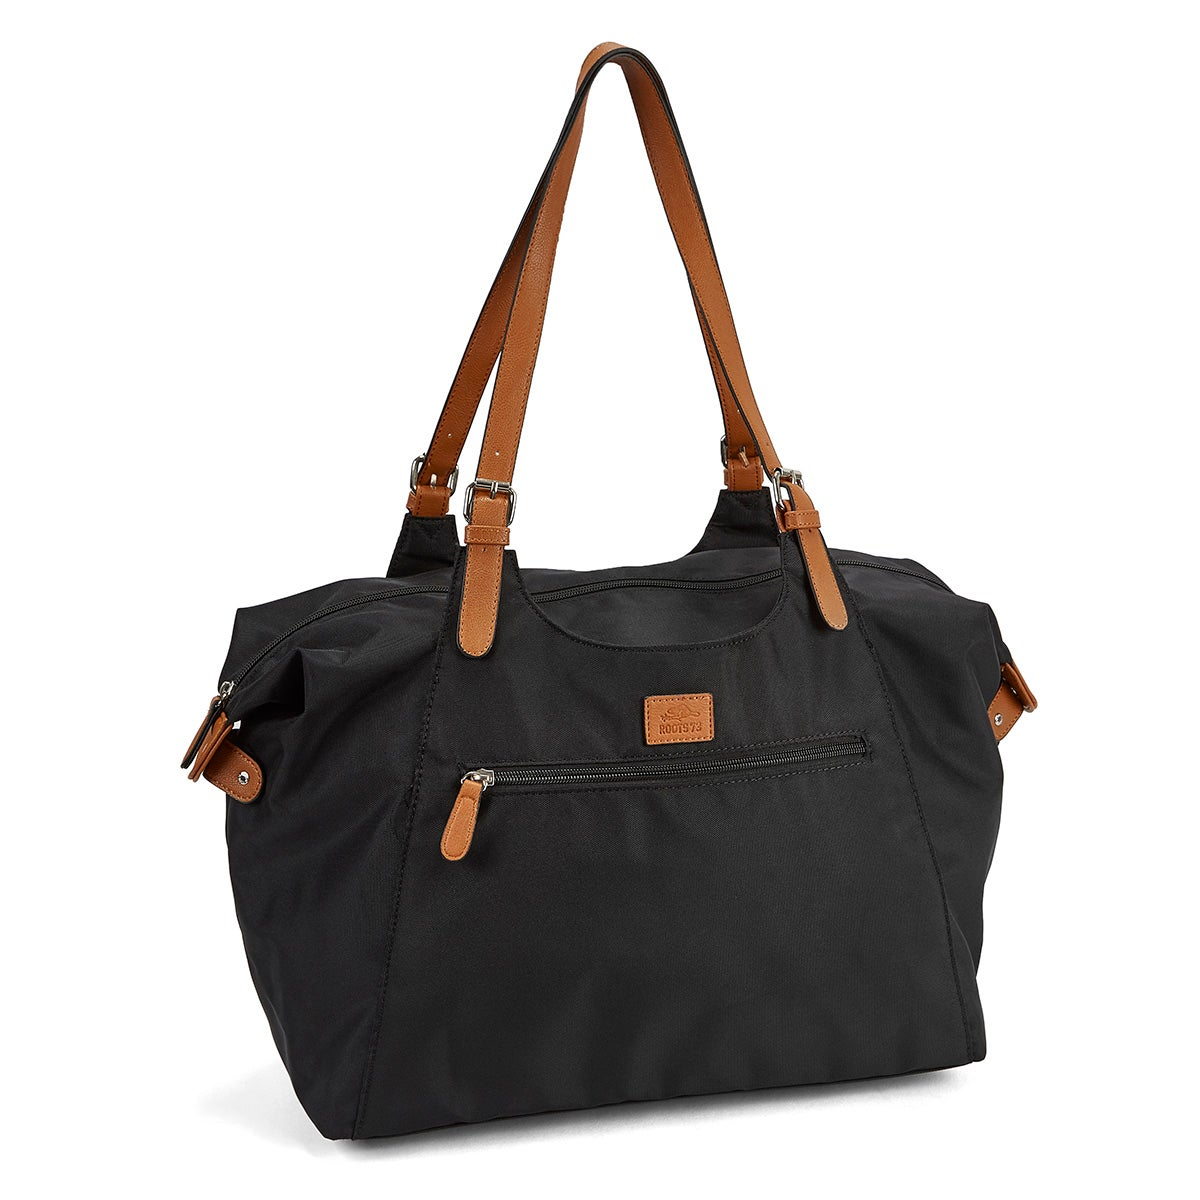 Women's R4700 black large tote bag